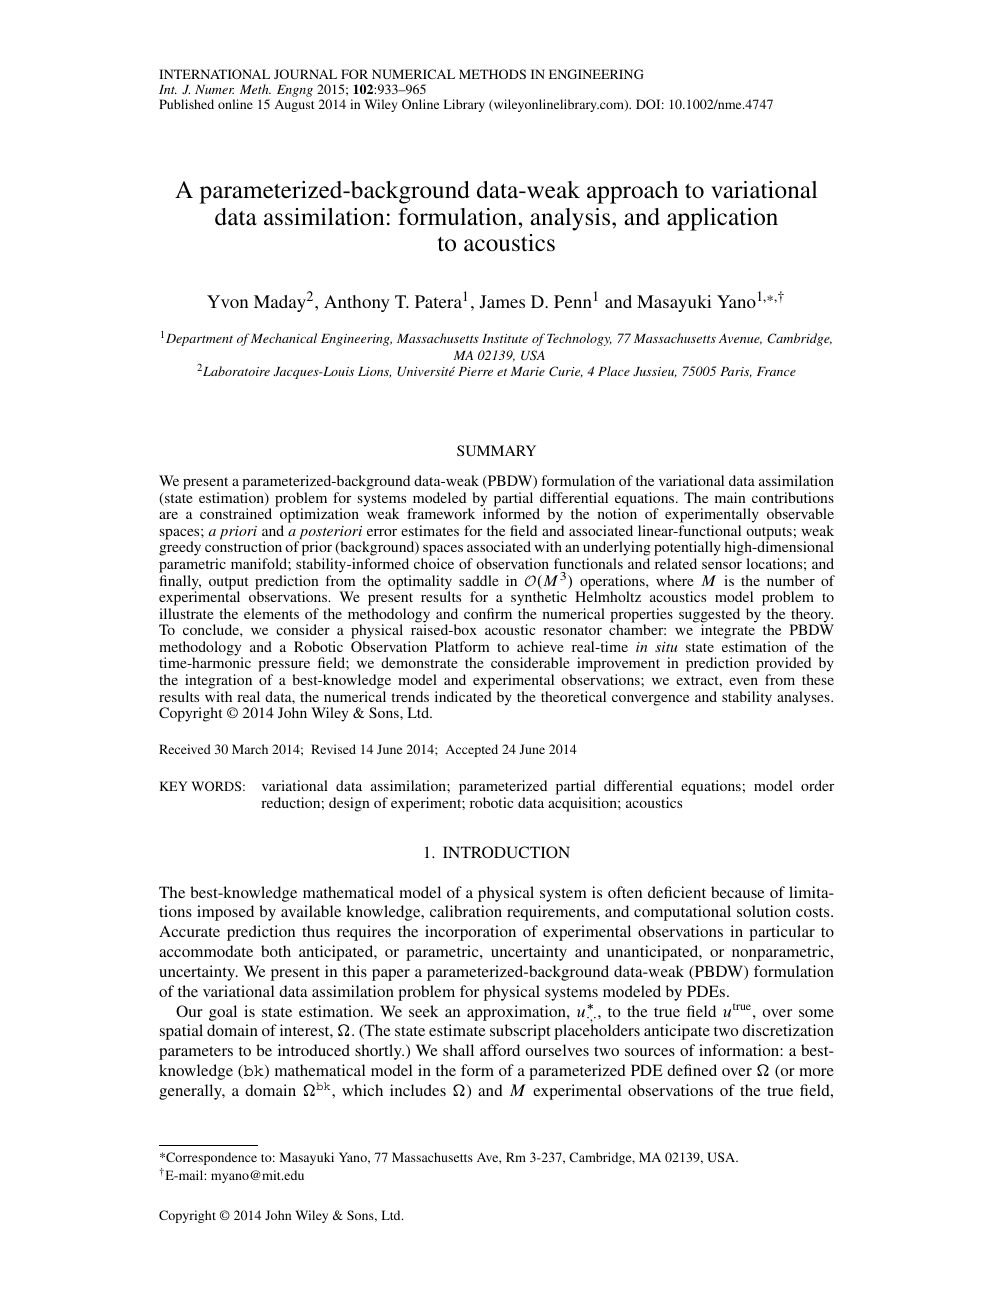 A parameterized-background data-weak approach to variational data